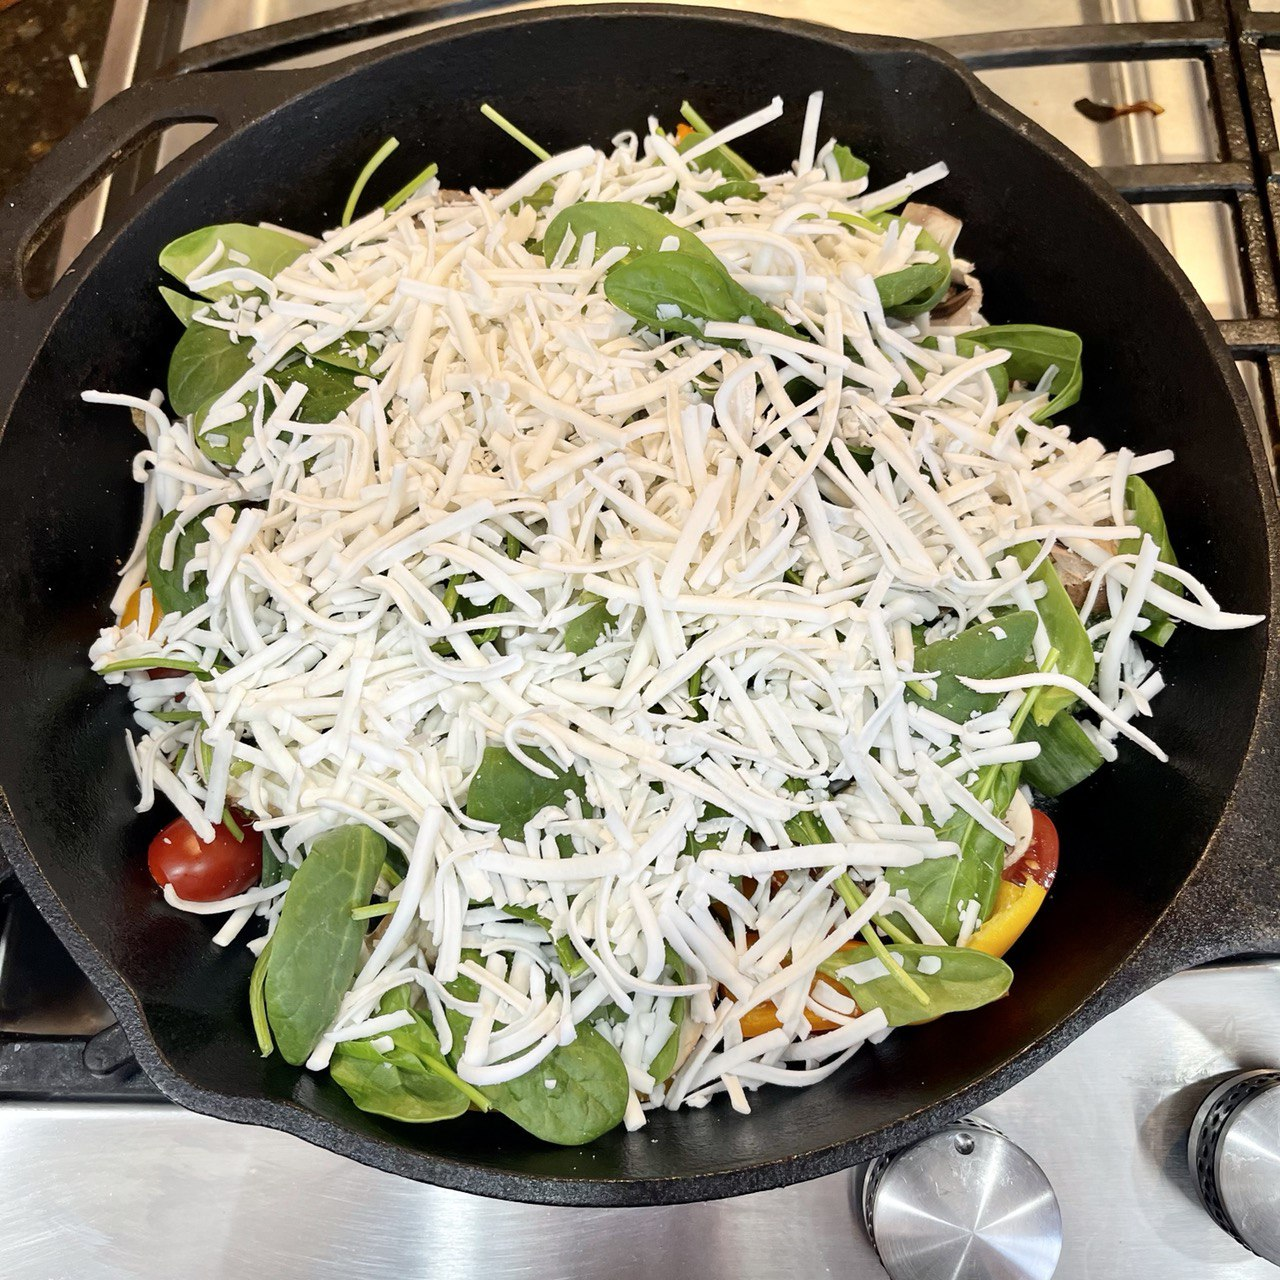 close-up of vegan mozzarella cheese sprinkled evenly over the previously-placed toppings in a 12 inch cast iron skillet